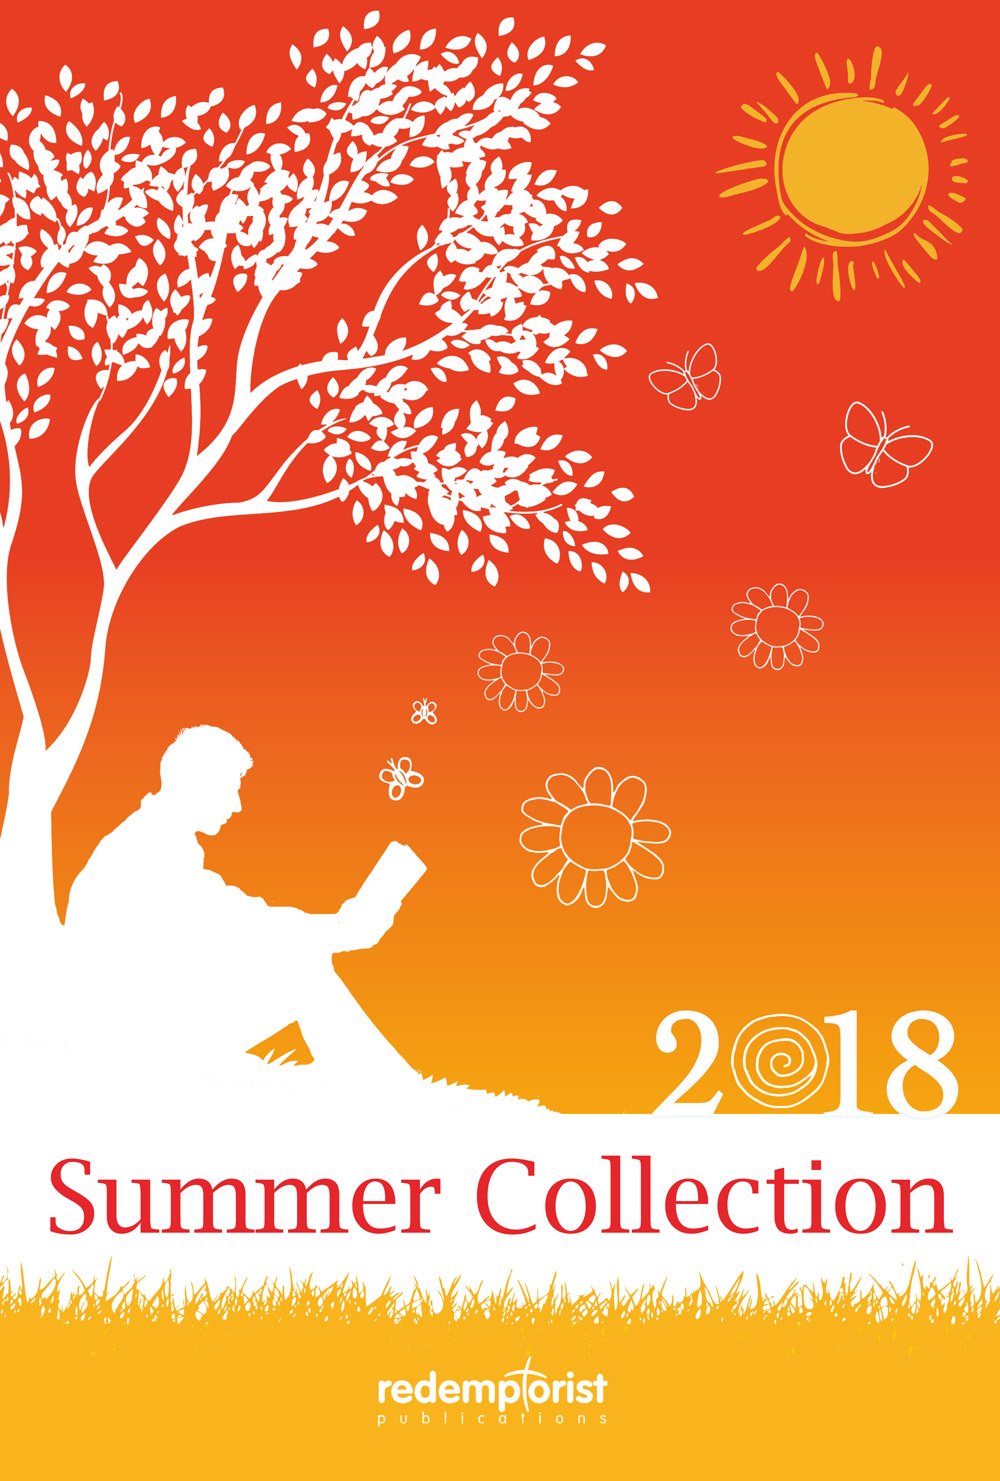 NEW Summer Collection catalogue